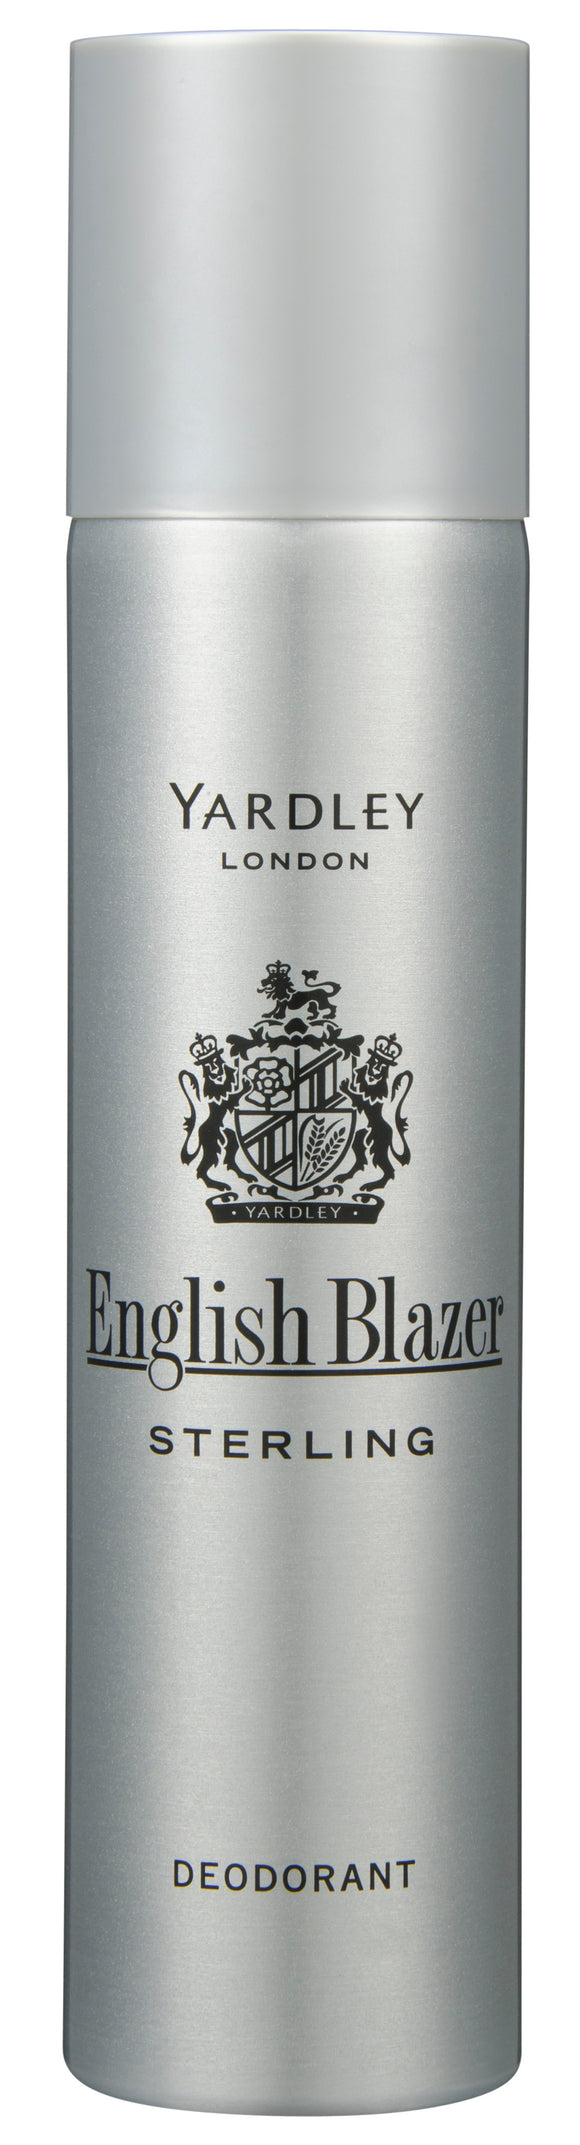 Yardley English Blazer Deodorant Body Spray Sterling 250ML